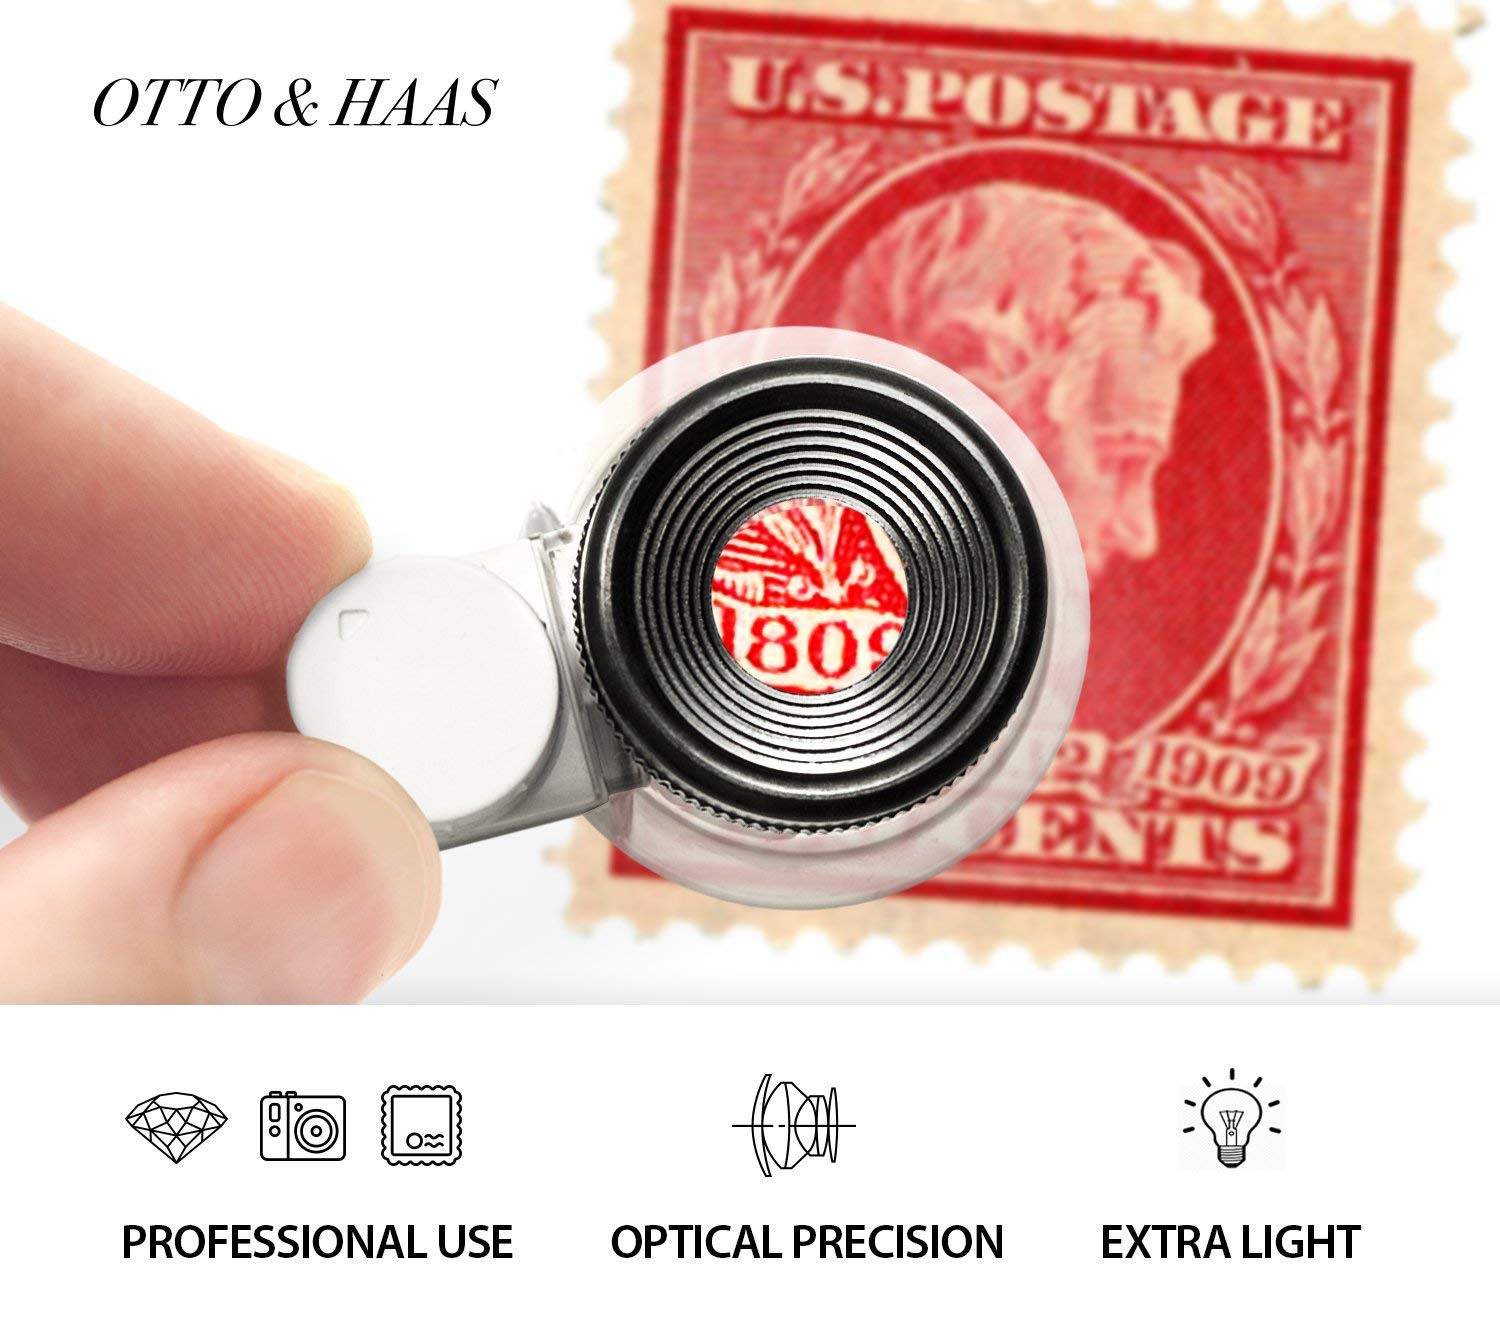 Eye-Piece for Close Work 6 LED Illuminated 20X Magnification Loop Scope Lupe with Light for Coin Collection Supplies Collectors Gift Stamp Collecting SOUOP Lighted Jewelers Loupe Magnifier